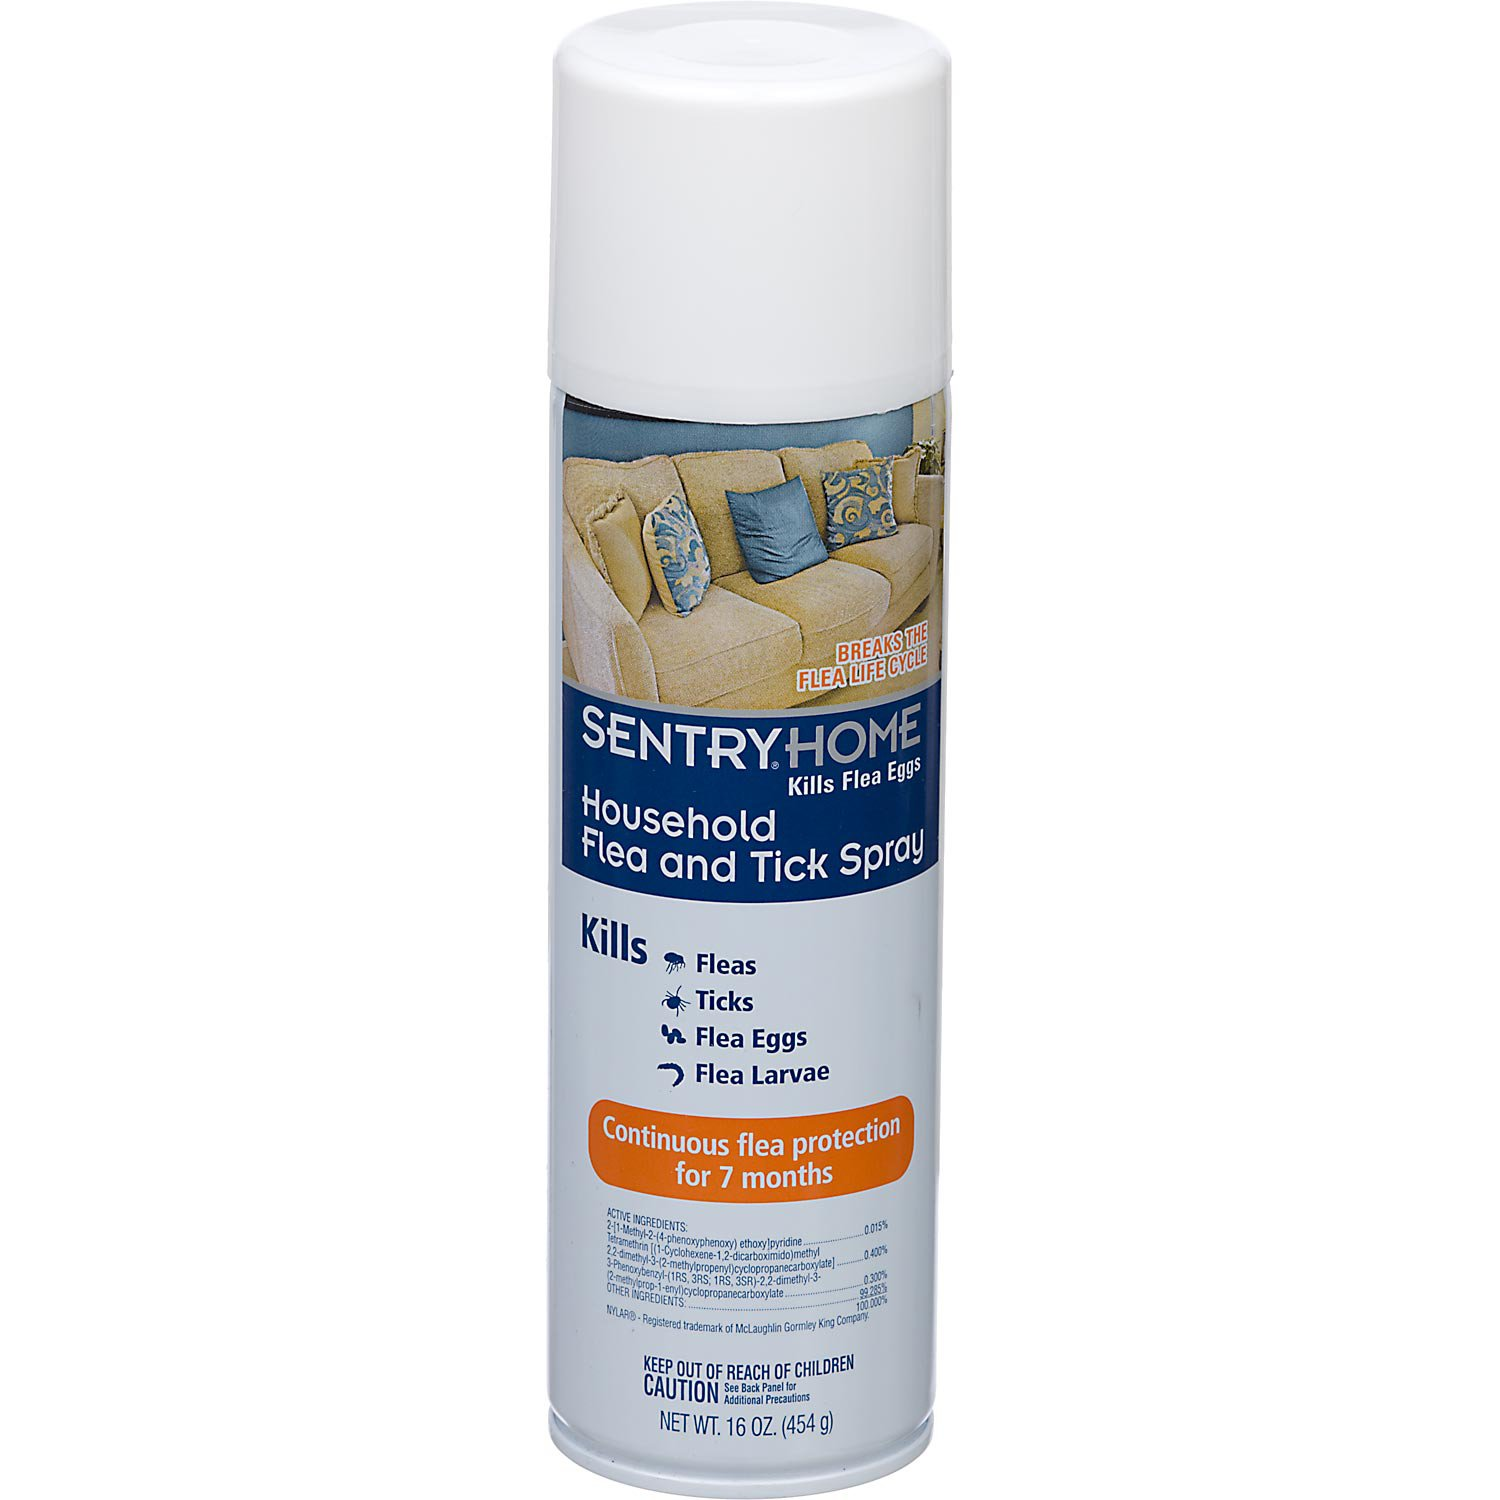 SentryHome Household Flea & Tick Spray | Petco